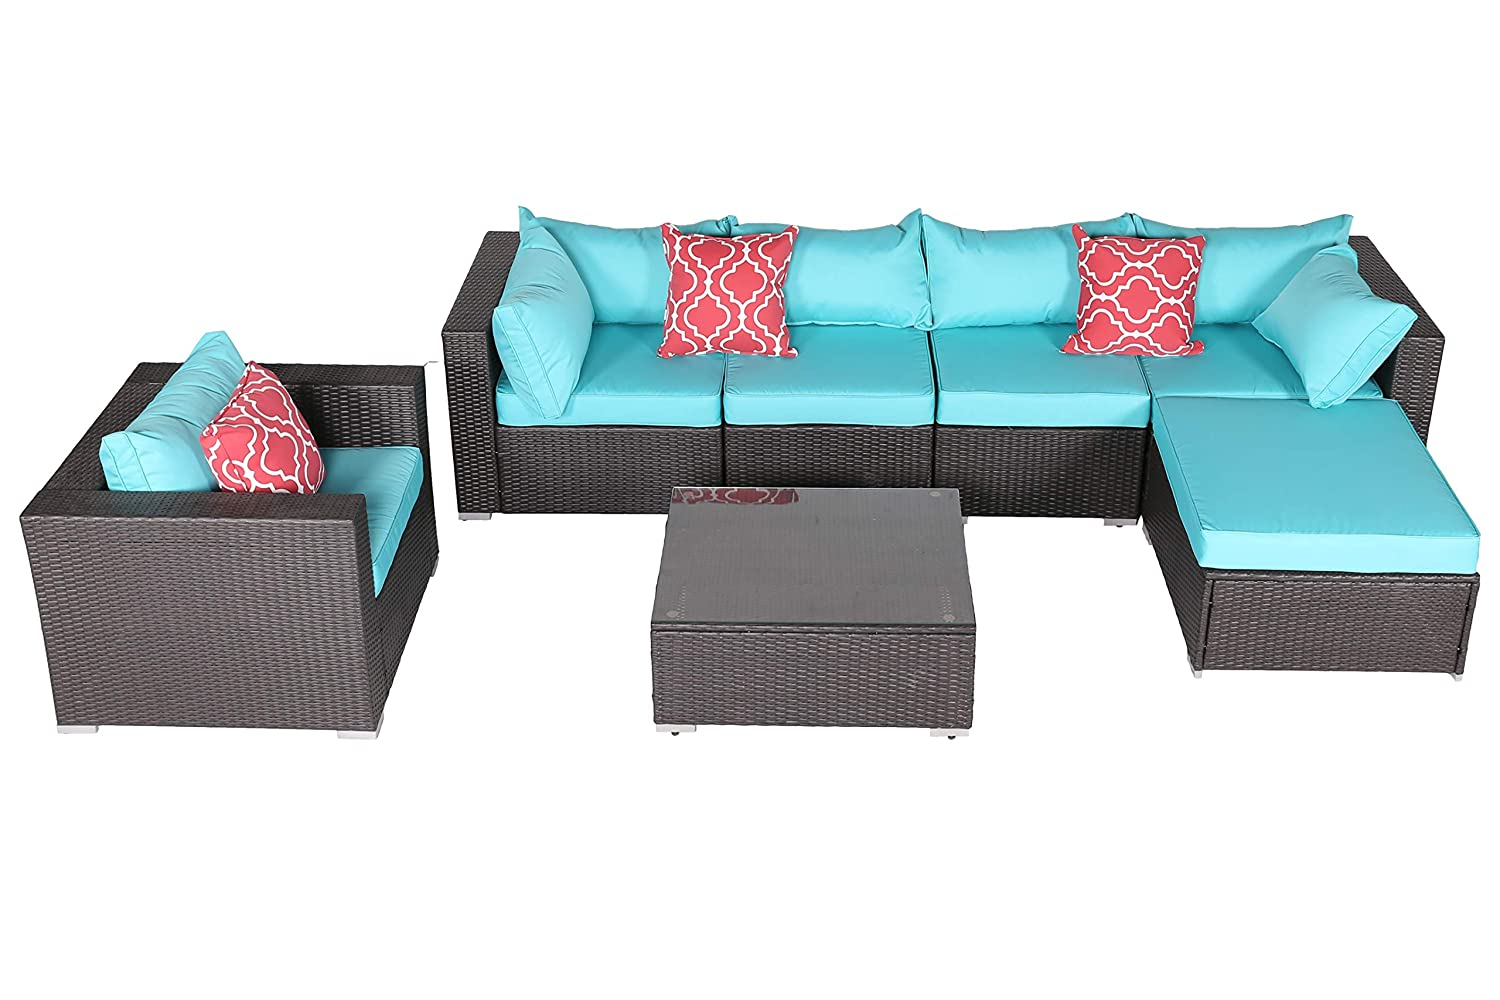 Do4U 7 Pieces Outdoor Patio PE Rattan Wicker Sofa Sectional Furniture Set Conversation Set- Turquoise Seat Cushions & Glass Coffee Table| Patio, ...